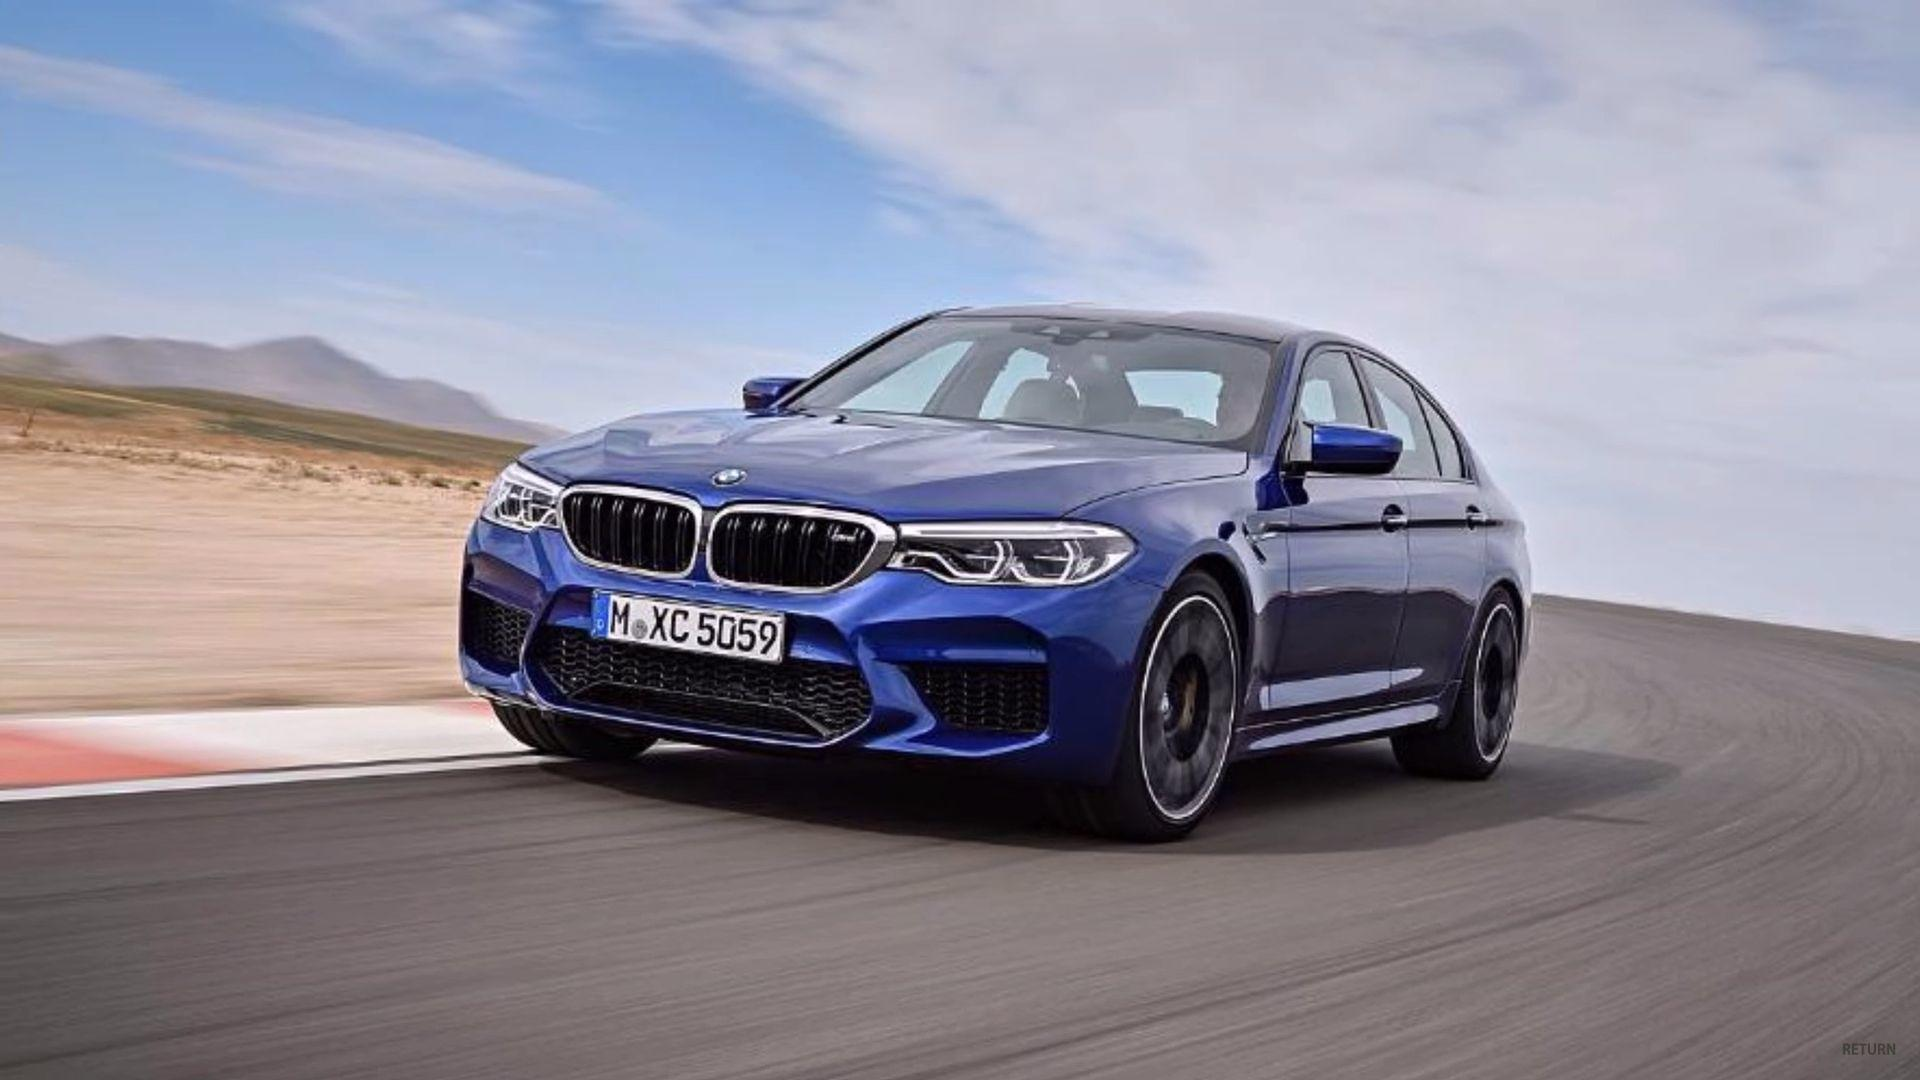 Bmw 320i 2016 >> 2018 BMW M5 Leaked Ahead Of Today's Reveal